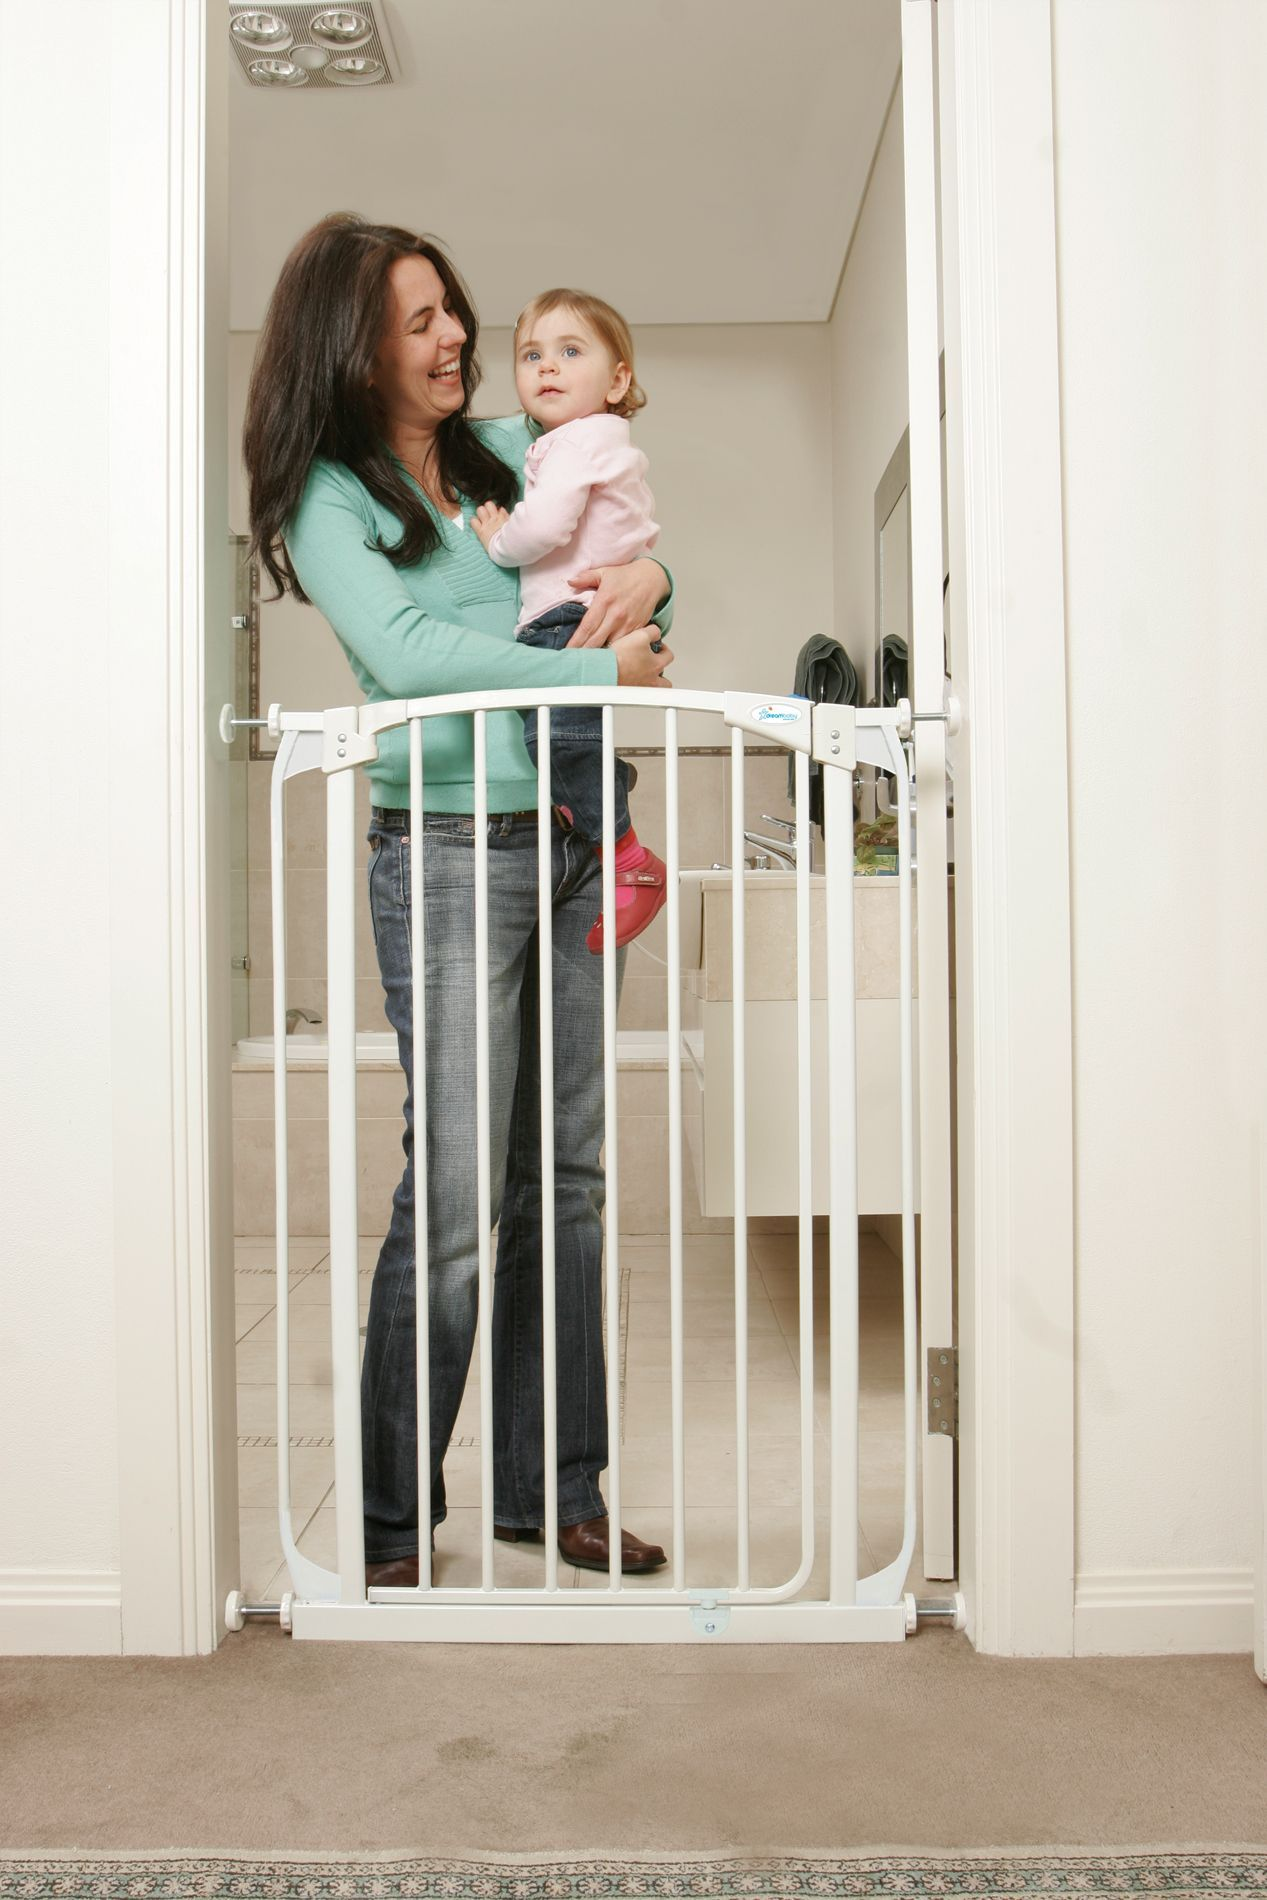 Safety 1st Wide and Sturdy Sliding Gate